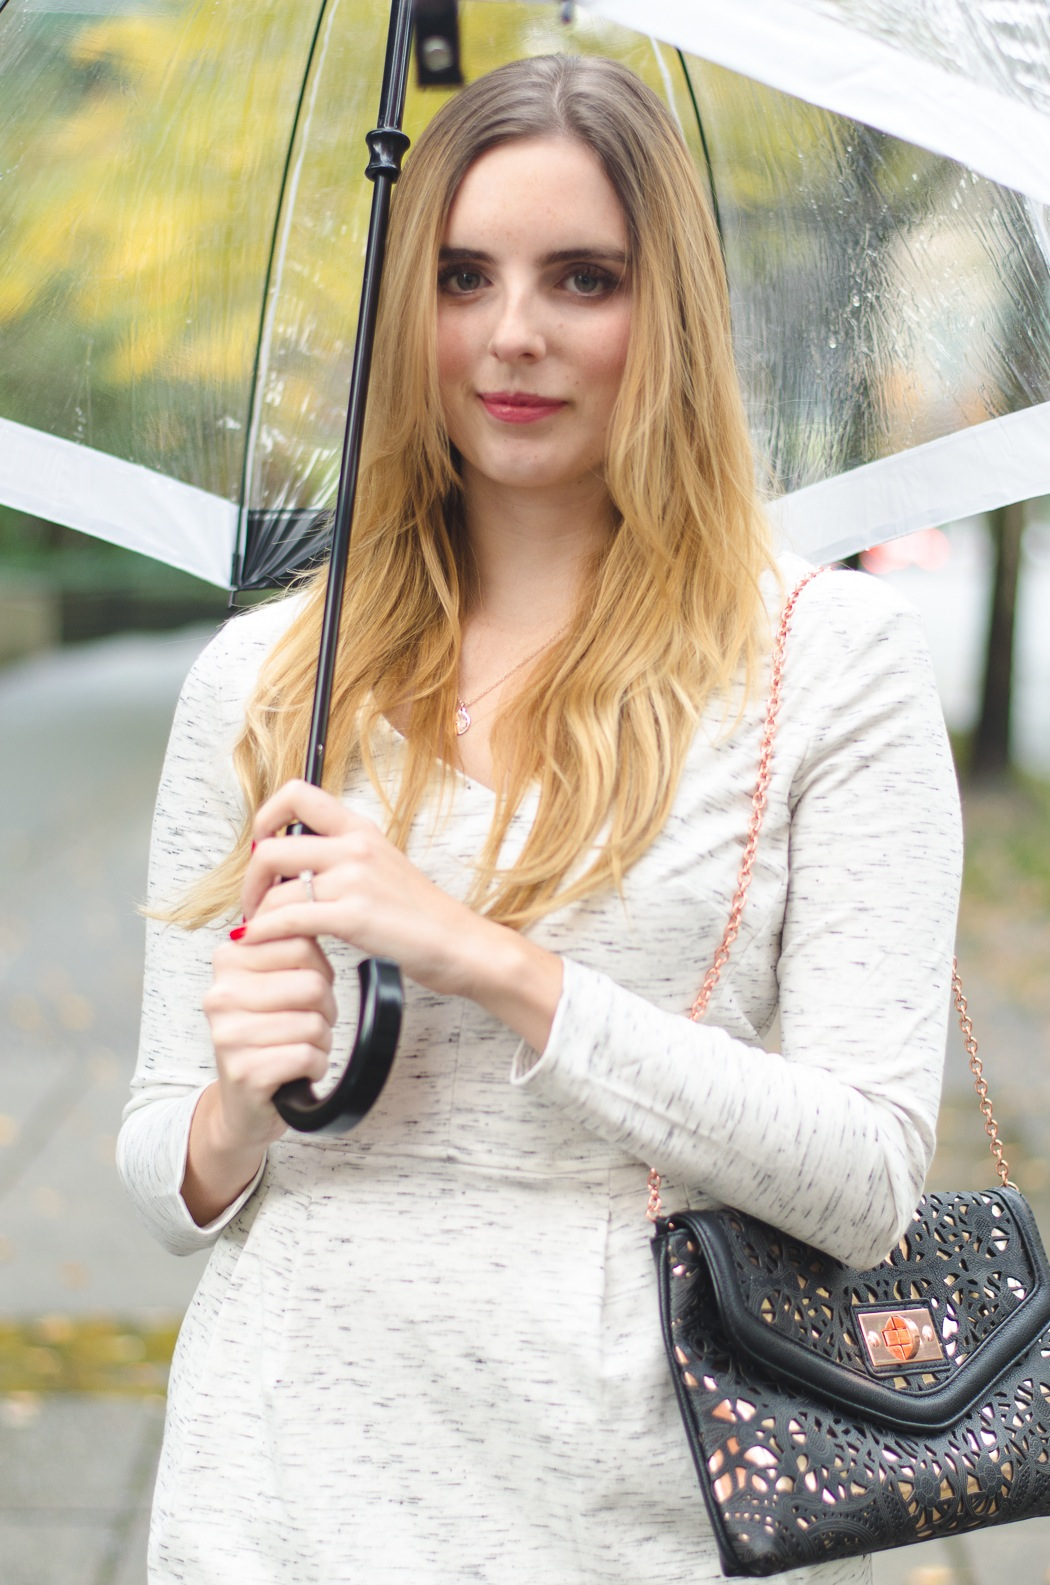 the urban umbrella style blog, vancouver style blog, vancouver style blogger, vancouver fashion blog, vancouver lifestyle blog, vancouver health blog, vancouver fitness blog, vancouver travel blog, canadian fashion blog, canadian style blog, canadian lifestyle blog, canadian health blog, canadian fitness blog, canadian travel blog, bree aylwin, dynamite clothing v-neck tulip dress, how to look stylish in the fall, fall date night outfit idea, best date night outfit, cute datenight outfit, how to look stylish in the rain, best health blogs, best travel blogs, top fashion blogs, top style blogs, top lifestyle blogs, top fitness blogs, top health blogs, top travel blogs